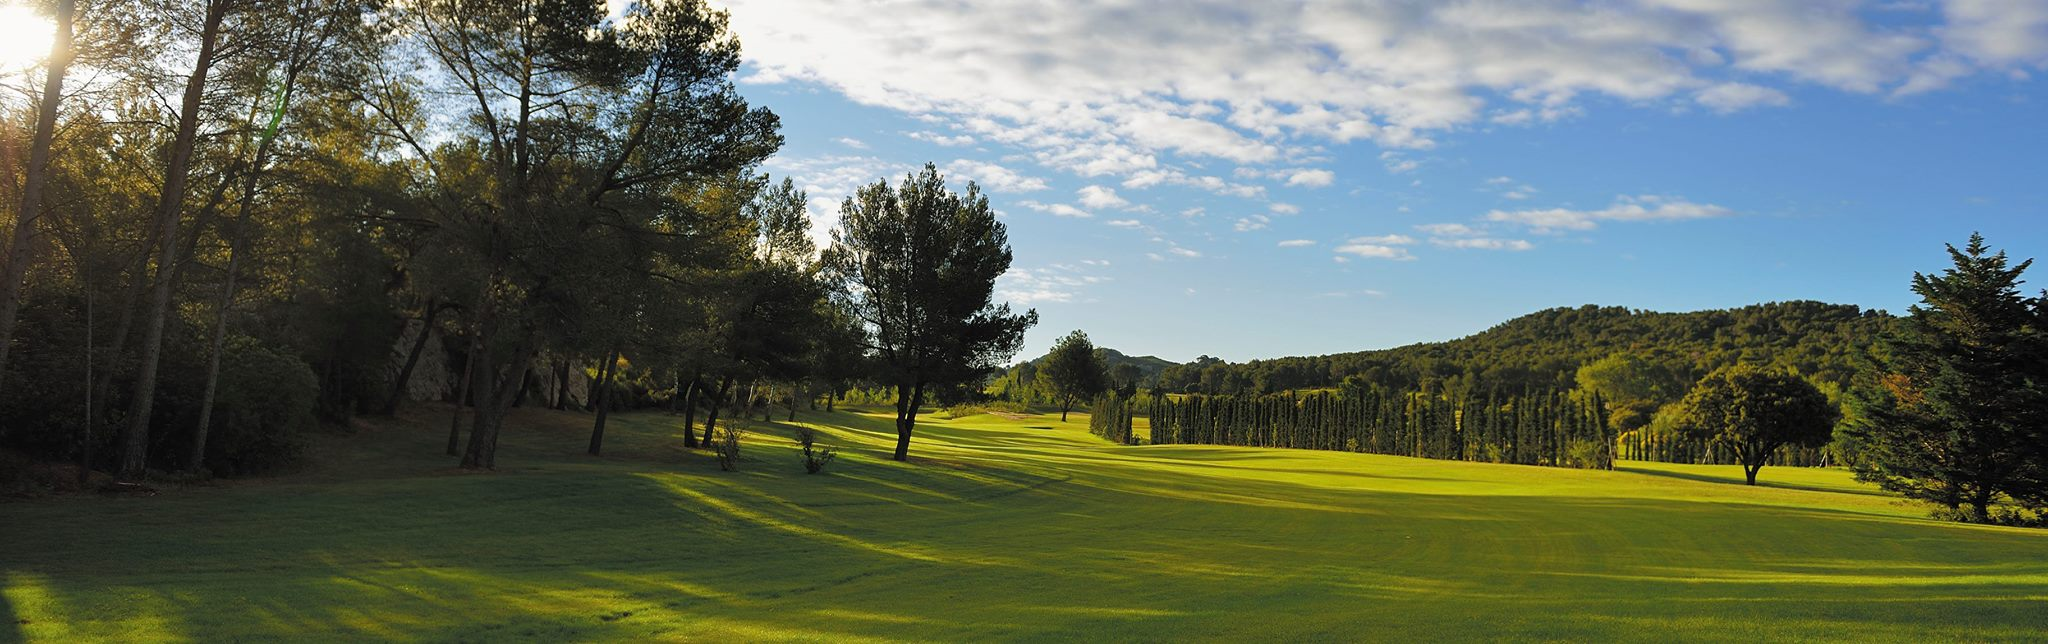 Overview of golf course named Domaine de Manville